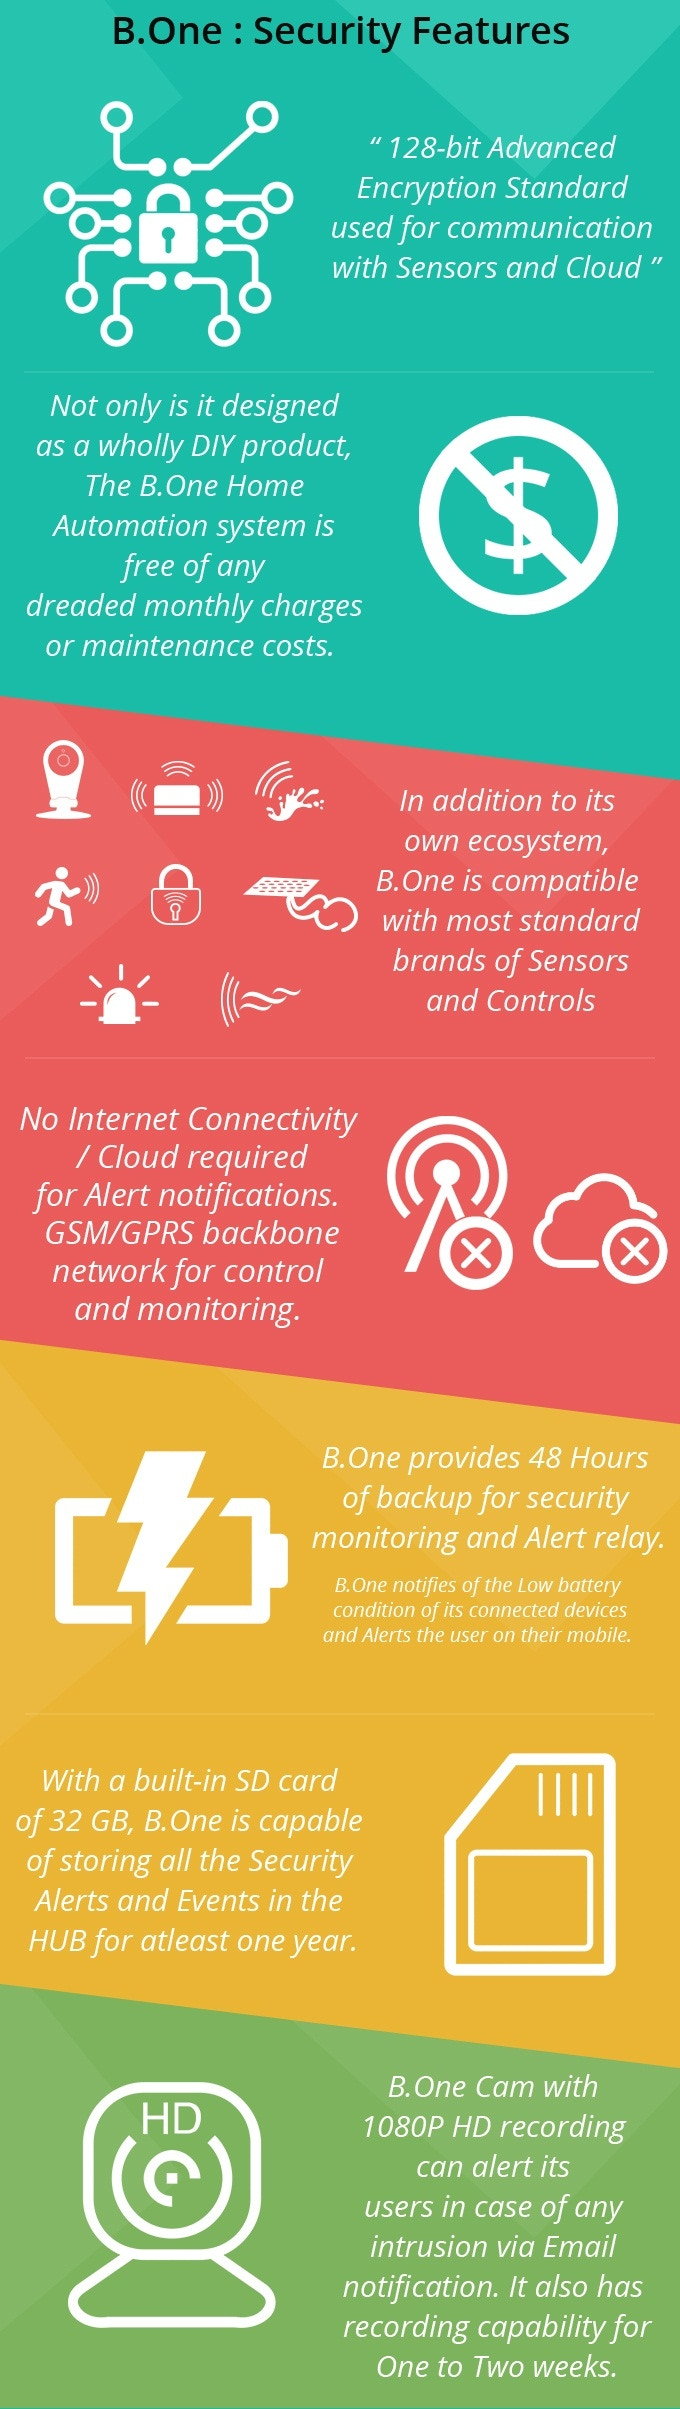 B.One Smart HUB Security features